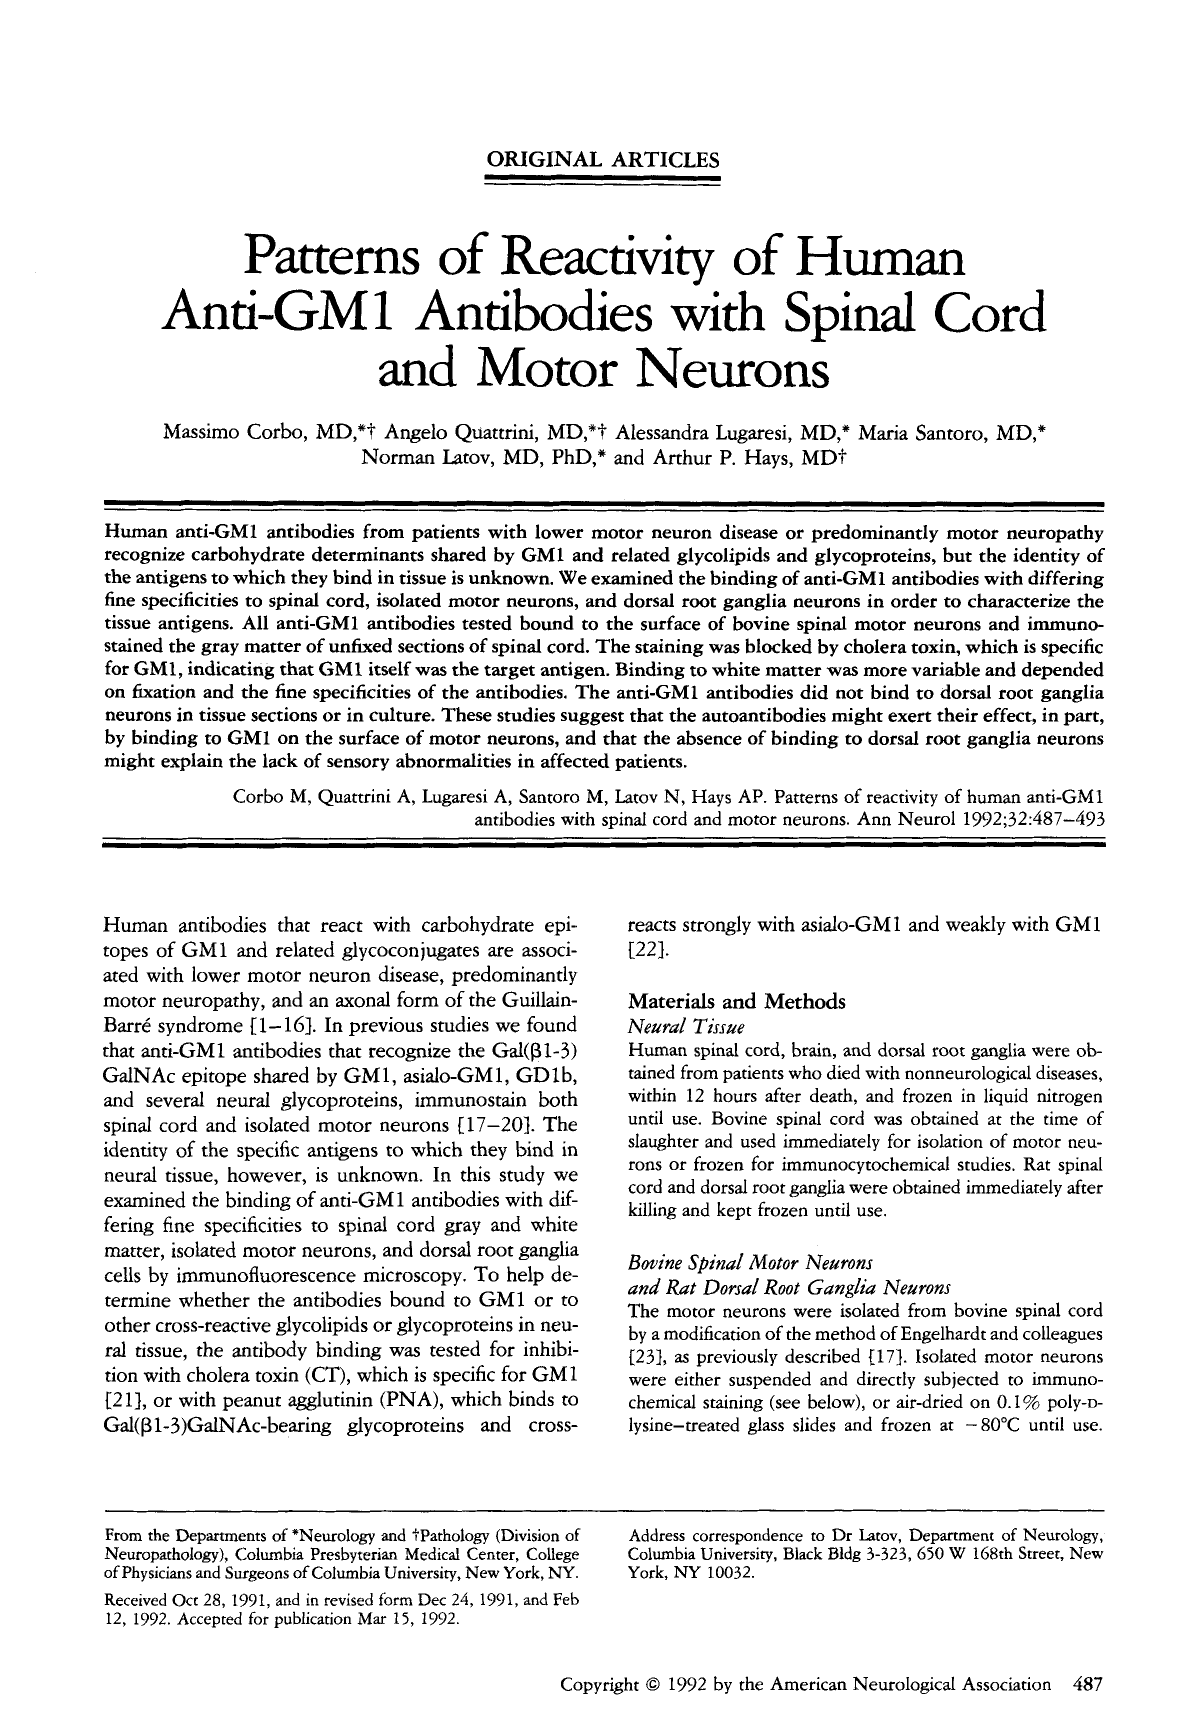 Patterns of reactivity of human anti-GM1 antibodies with spinal cord